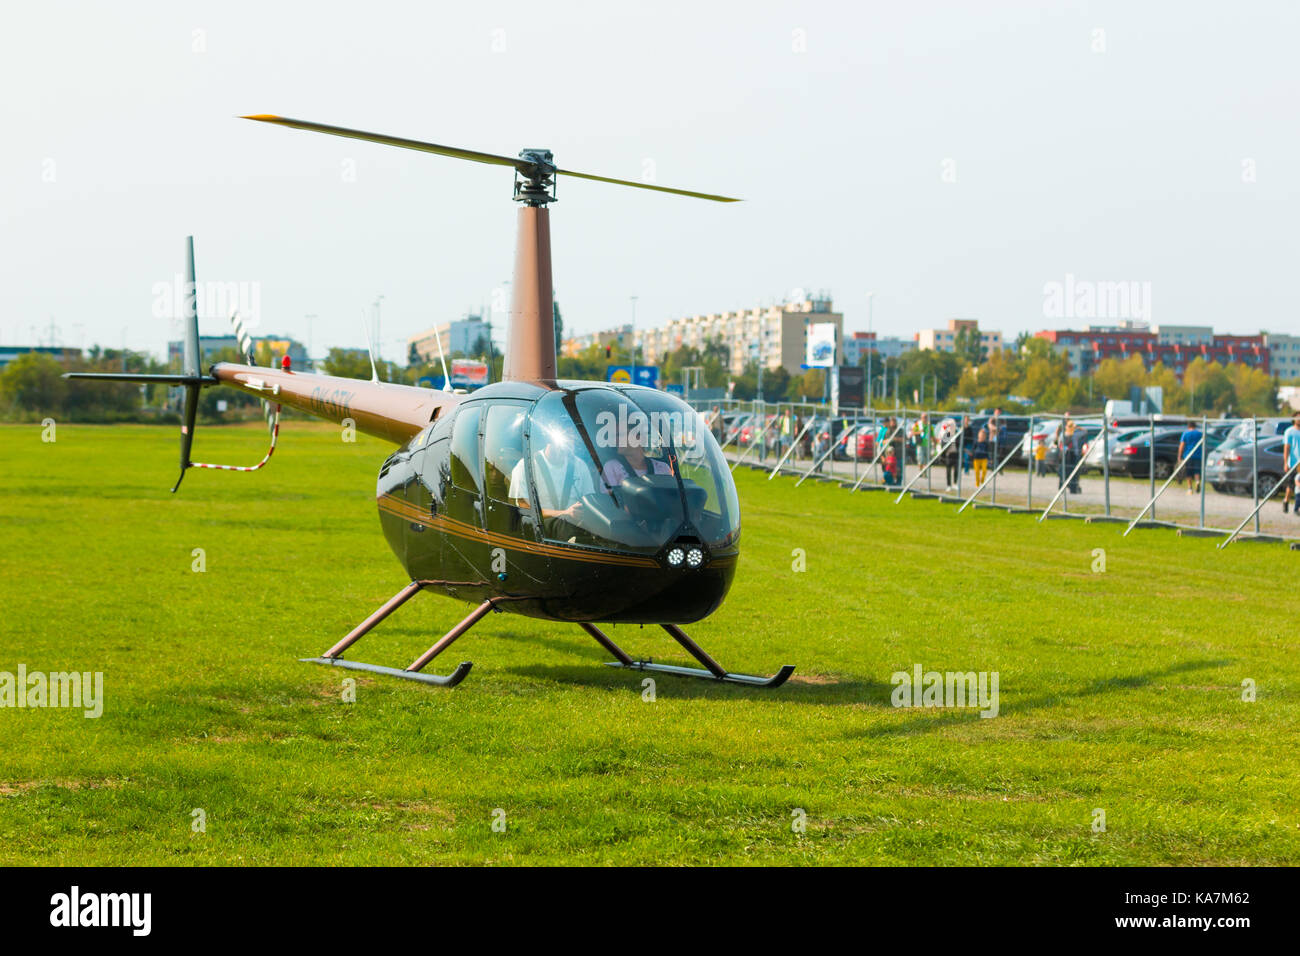 PRAGUE, CZECH REPUBLIC - 9.09.2017: New black helicopter use like business transportation, People in helicopter - Stock Image